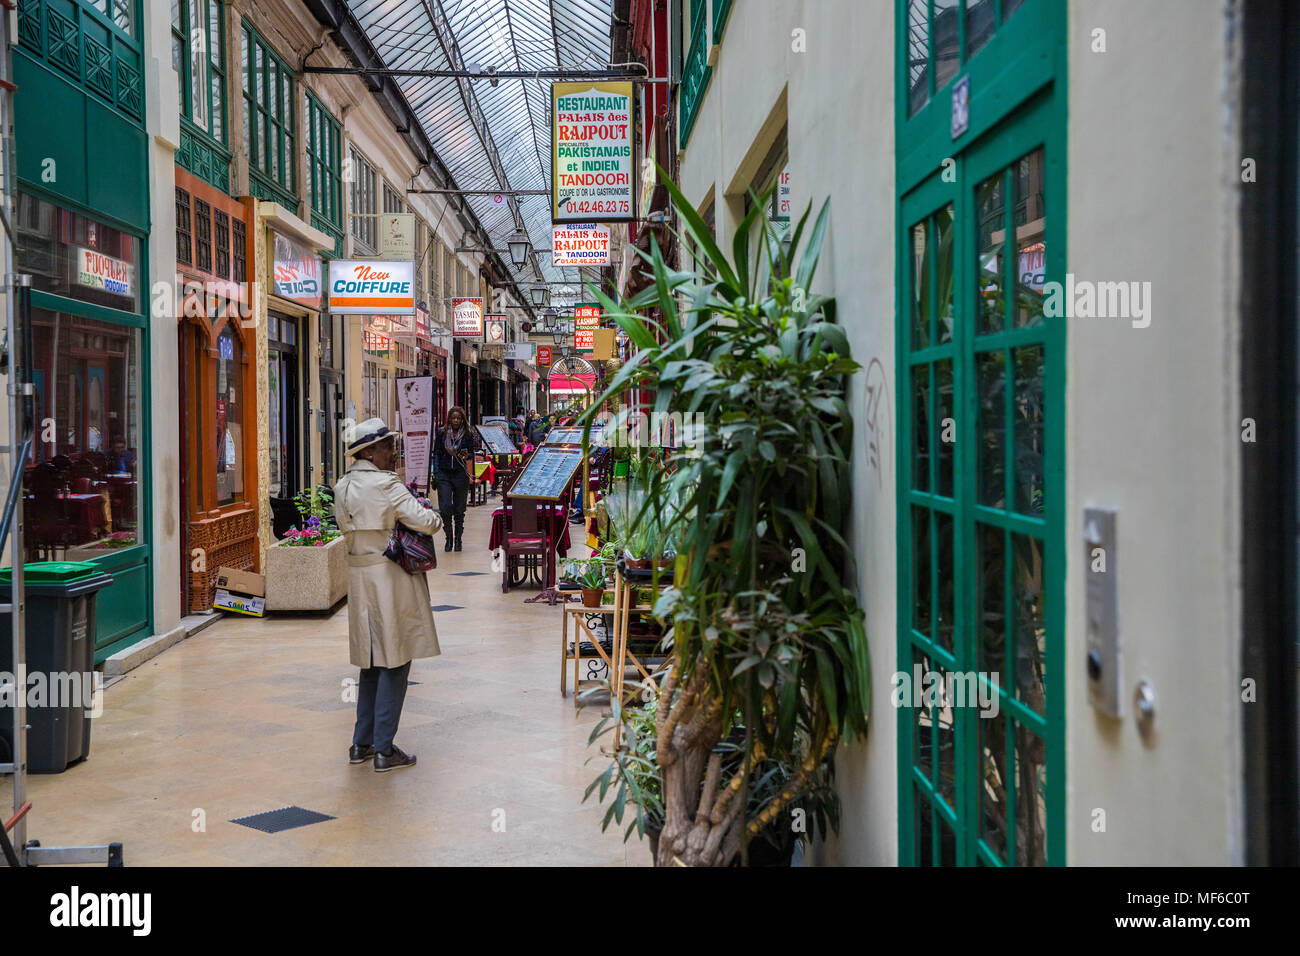 Passage Brady, passage couvert, covered passage, indian, Paris - Stock Image